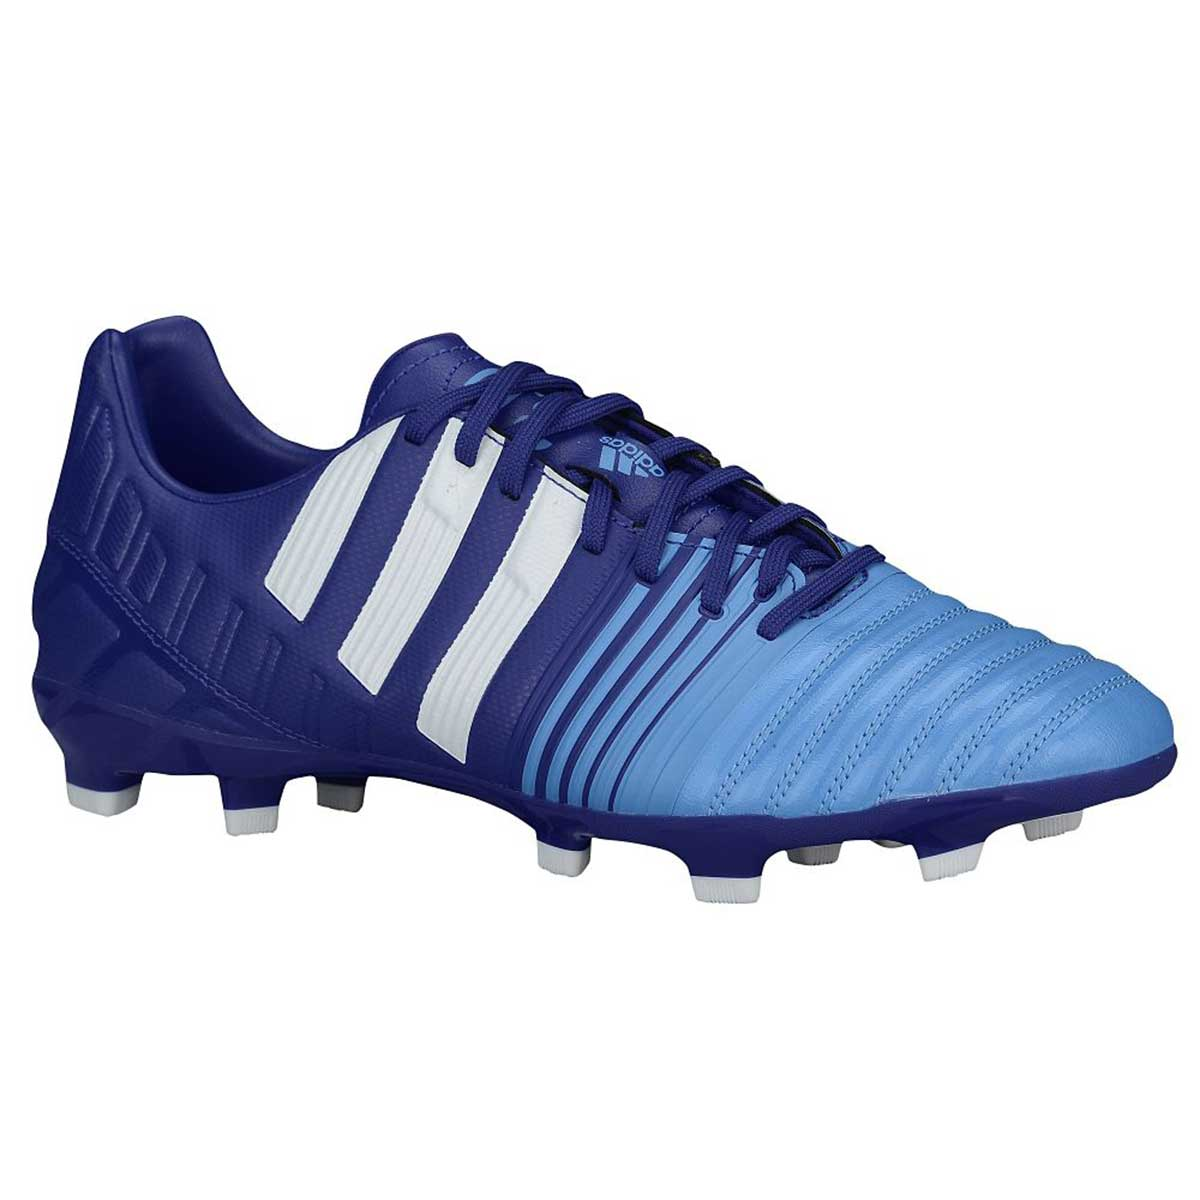 44d3780e15 Buy Adidas Nitrocharge 3.0 FG Football Shoes Online in India